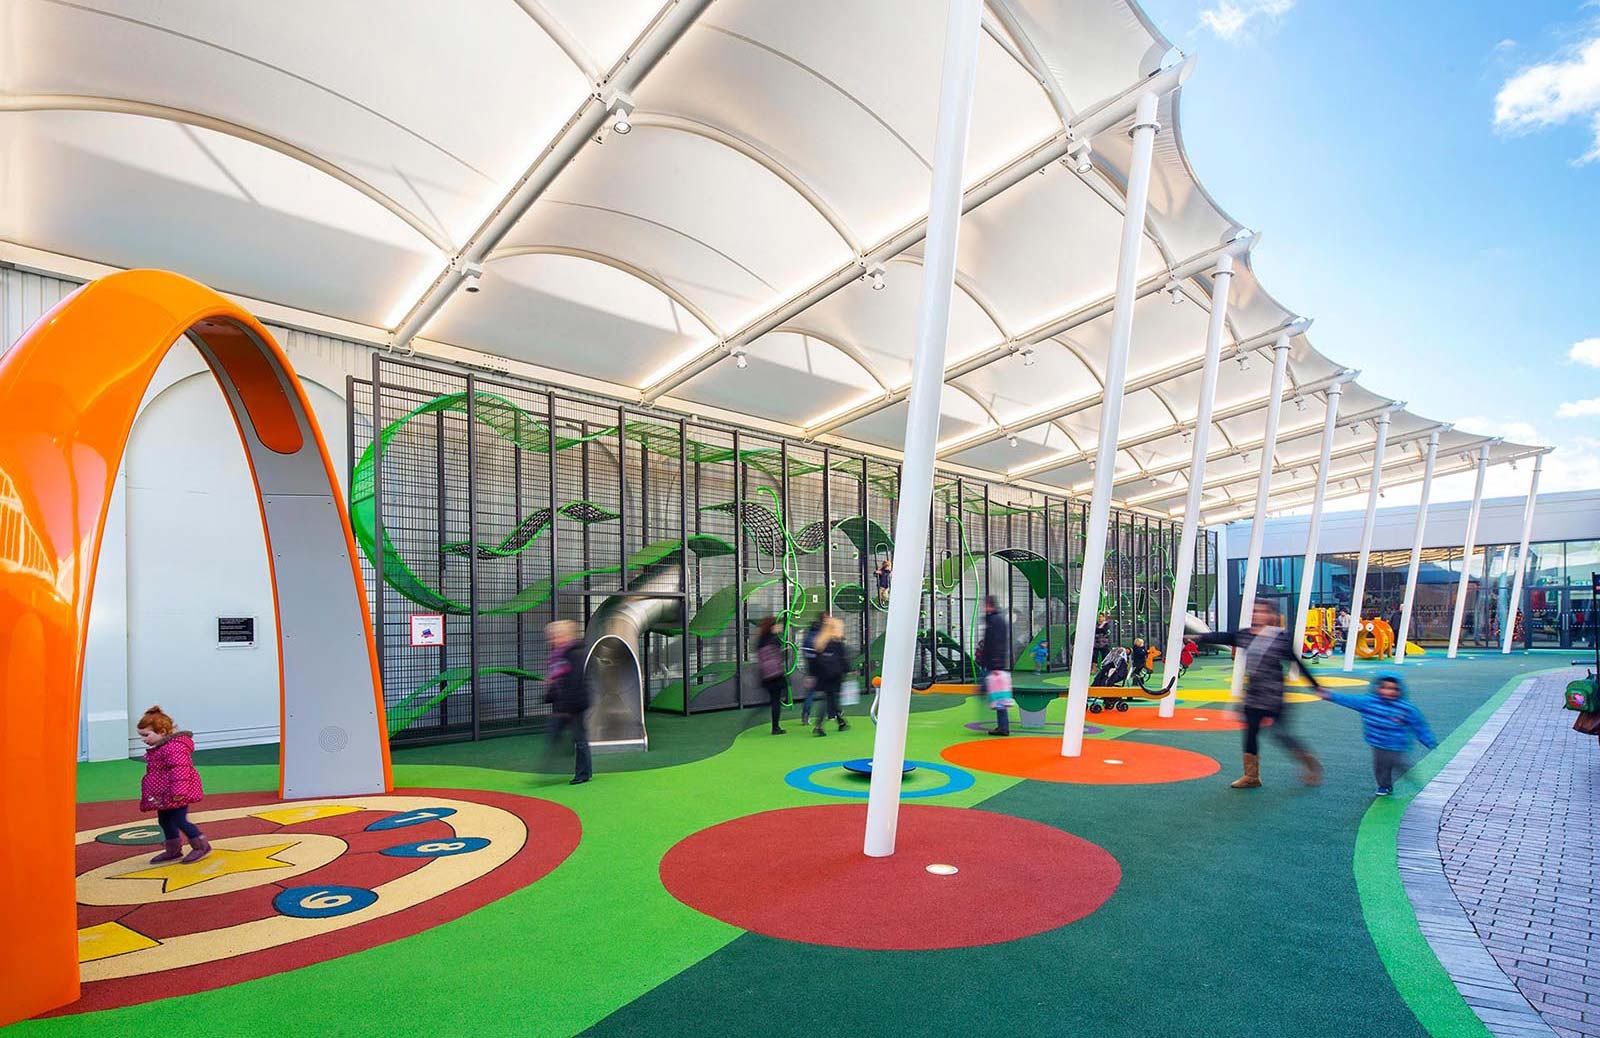 Swindon Designer Outlet play area